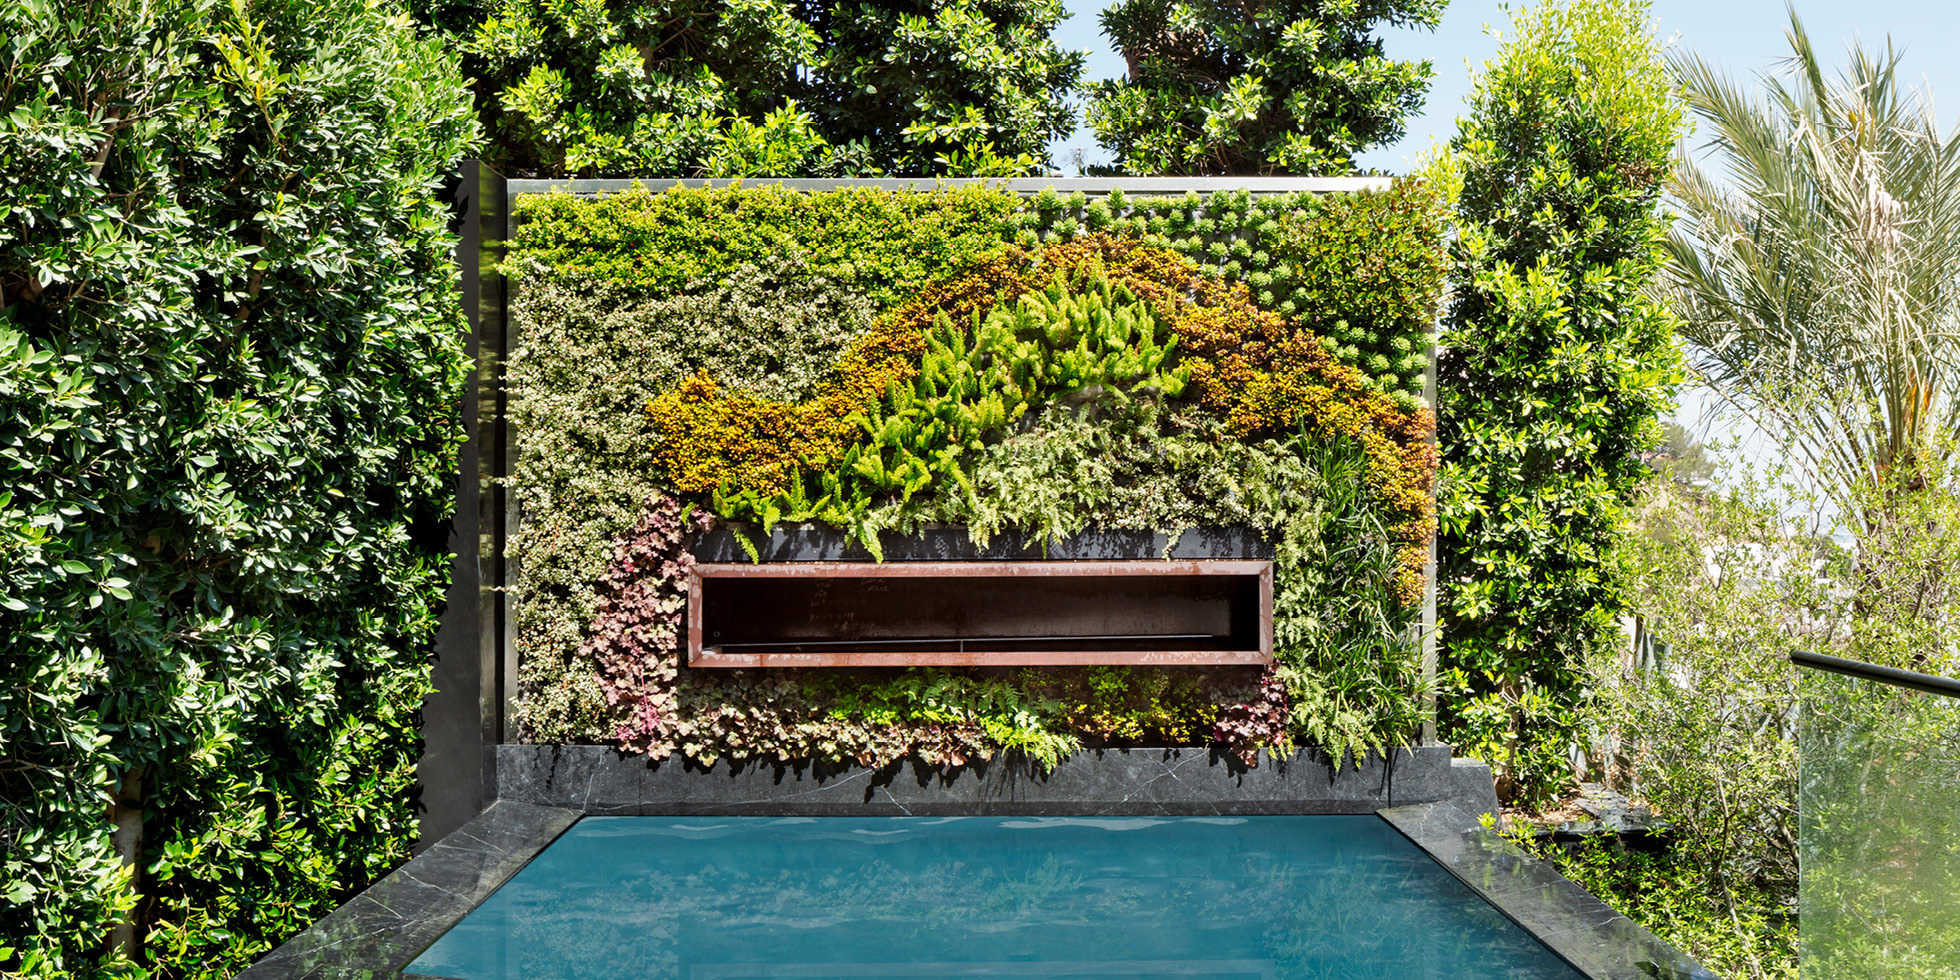 Los Angeles Residence Living Wall by Habitat Horticulture - View 1